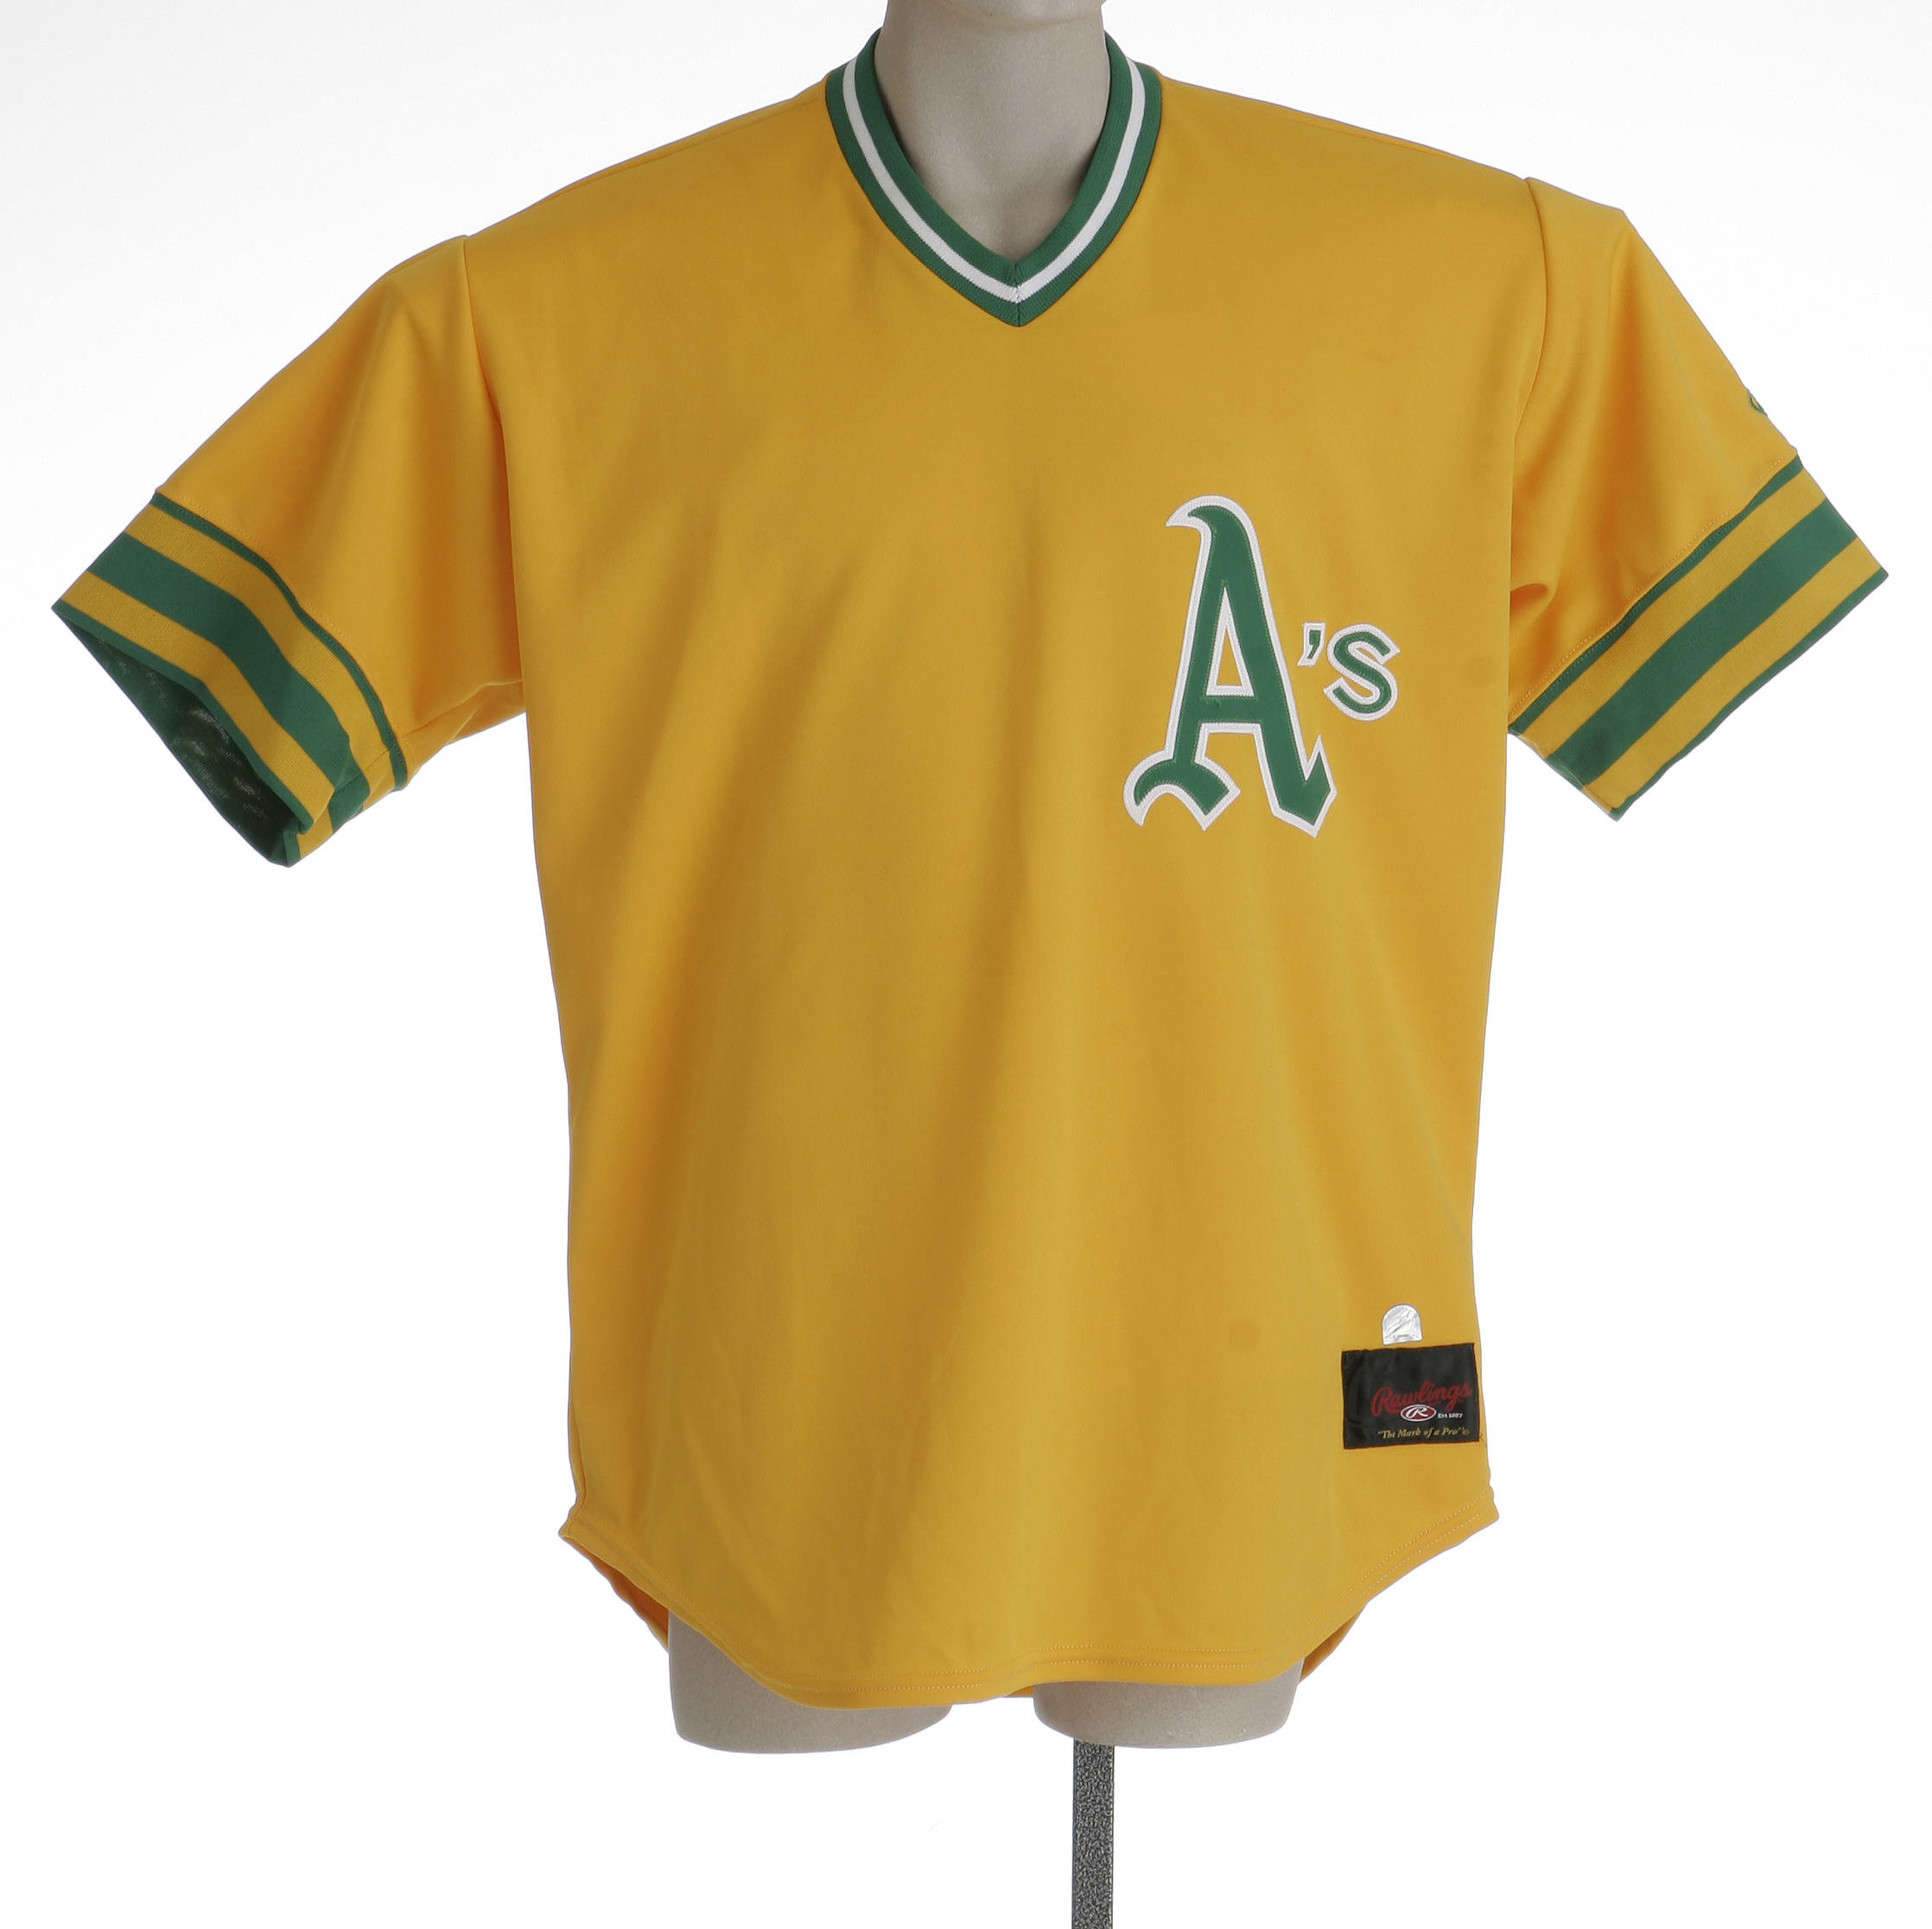 lowest price 6044d b5b4f 2002 Mike Magnante Oakland Athletics Game Worn Throwback ...